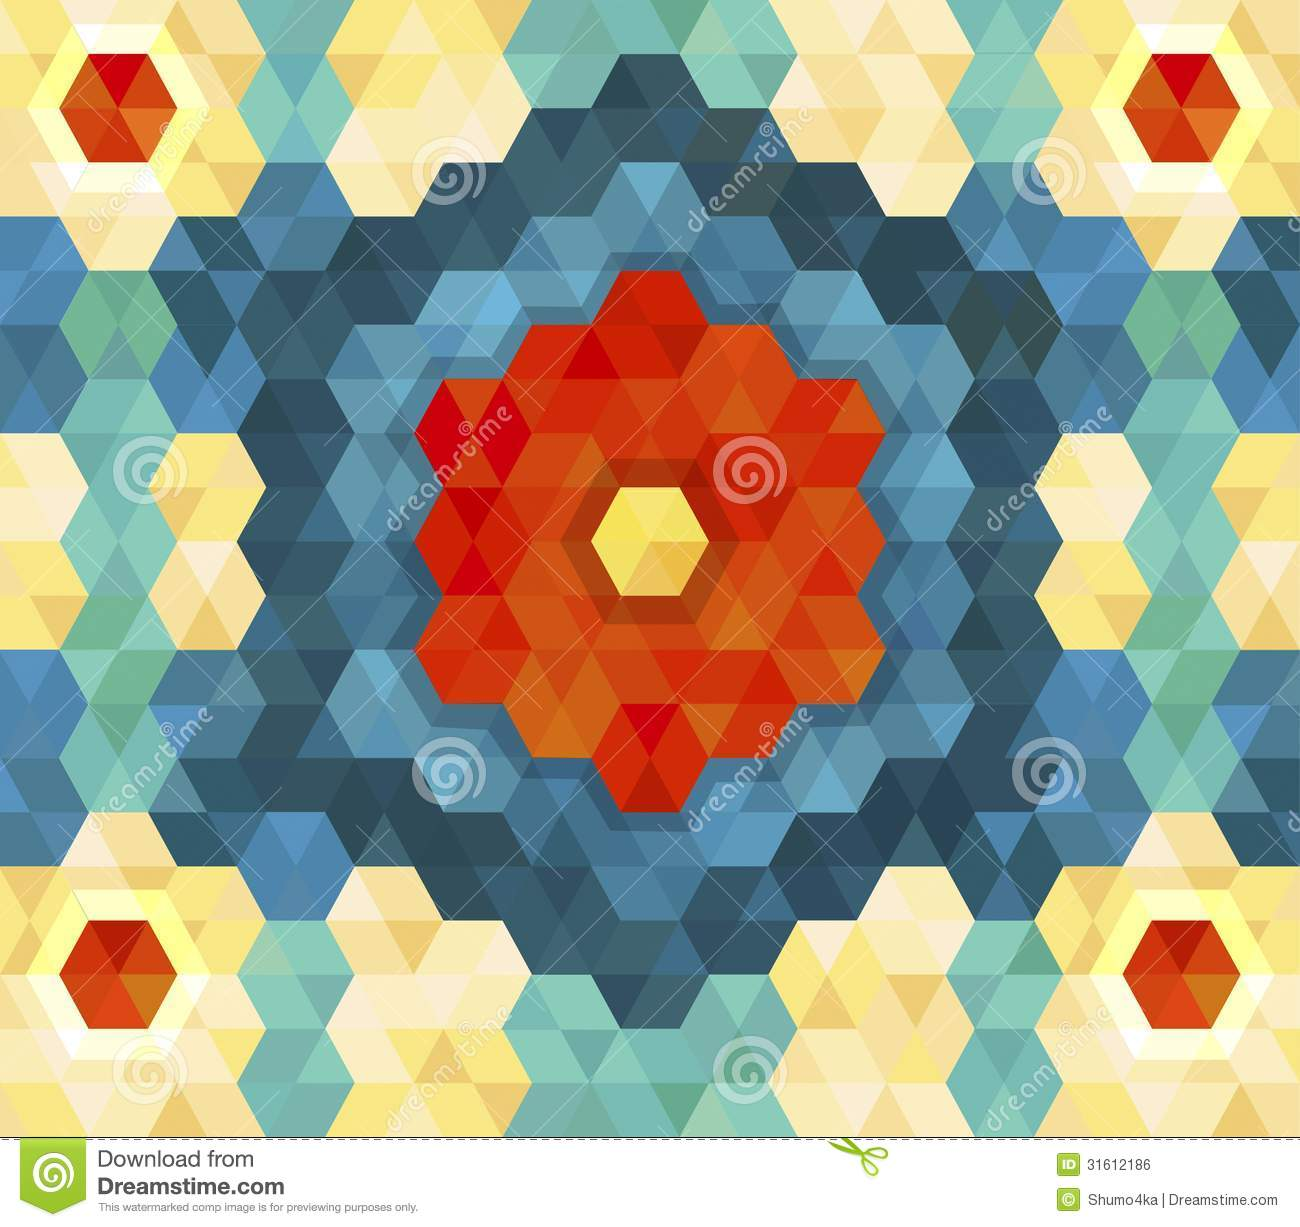 3d hexagon pattern stock vector image 54997696 - Geometric Hexagon Pattern For Your Design Royalty Free Stock Image